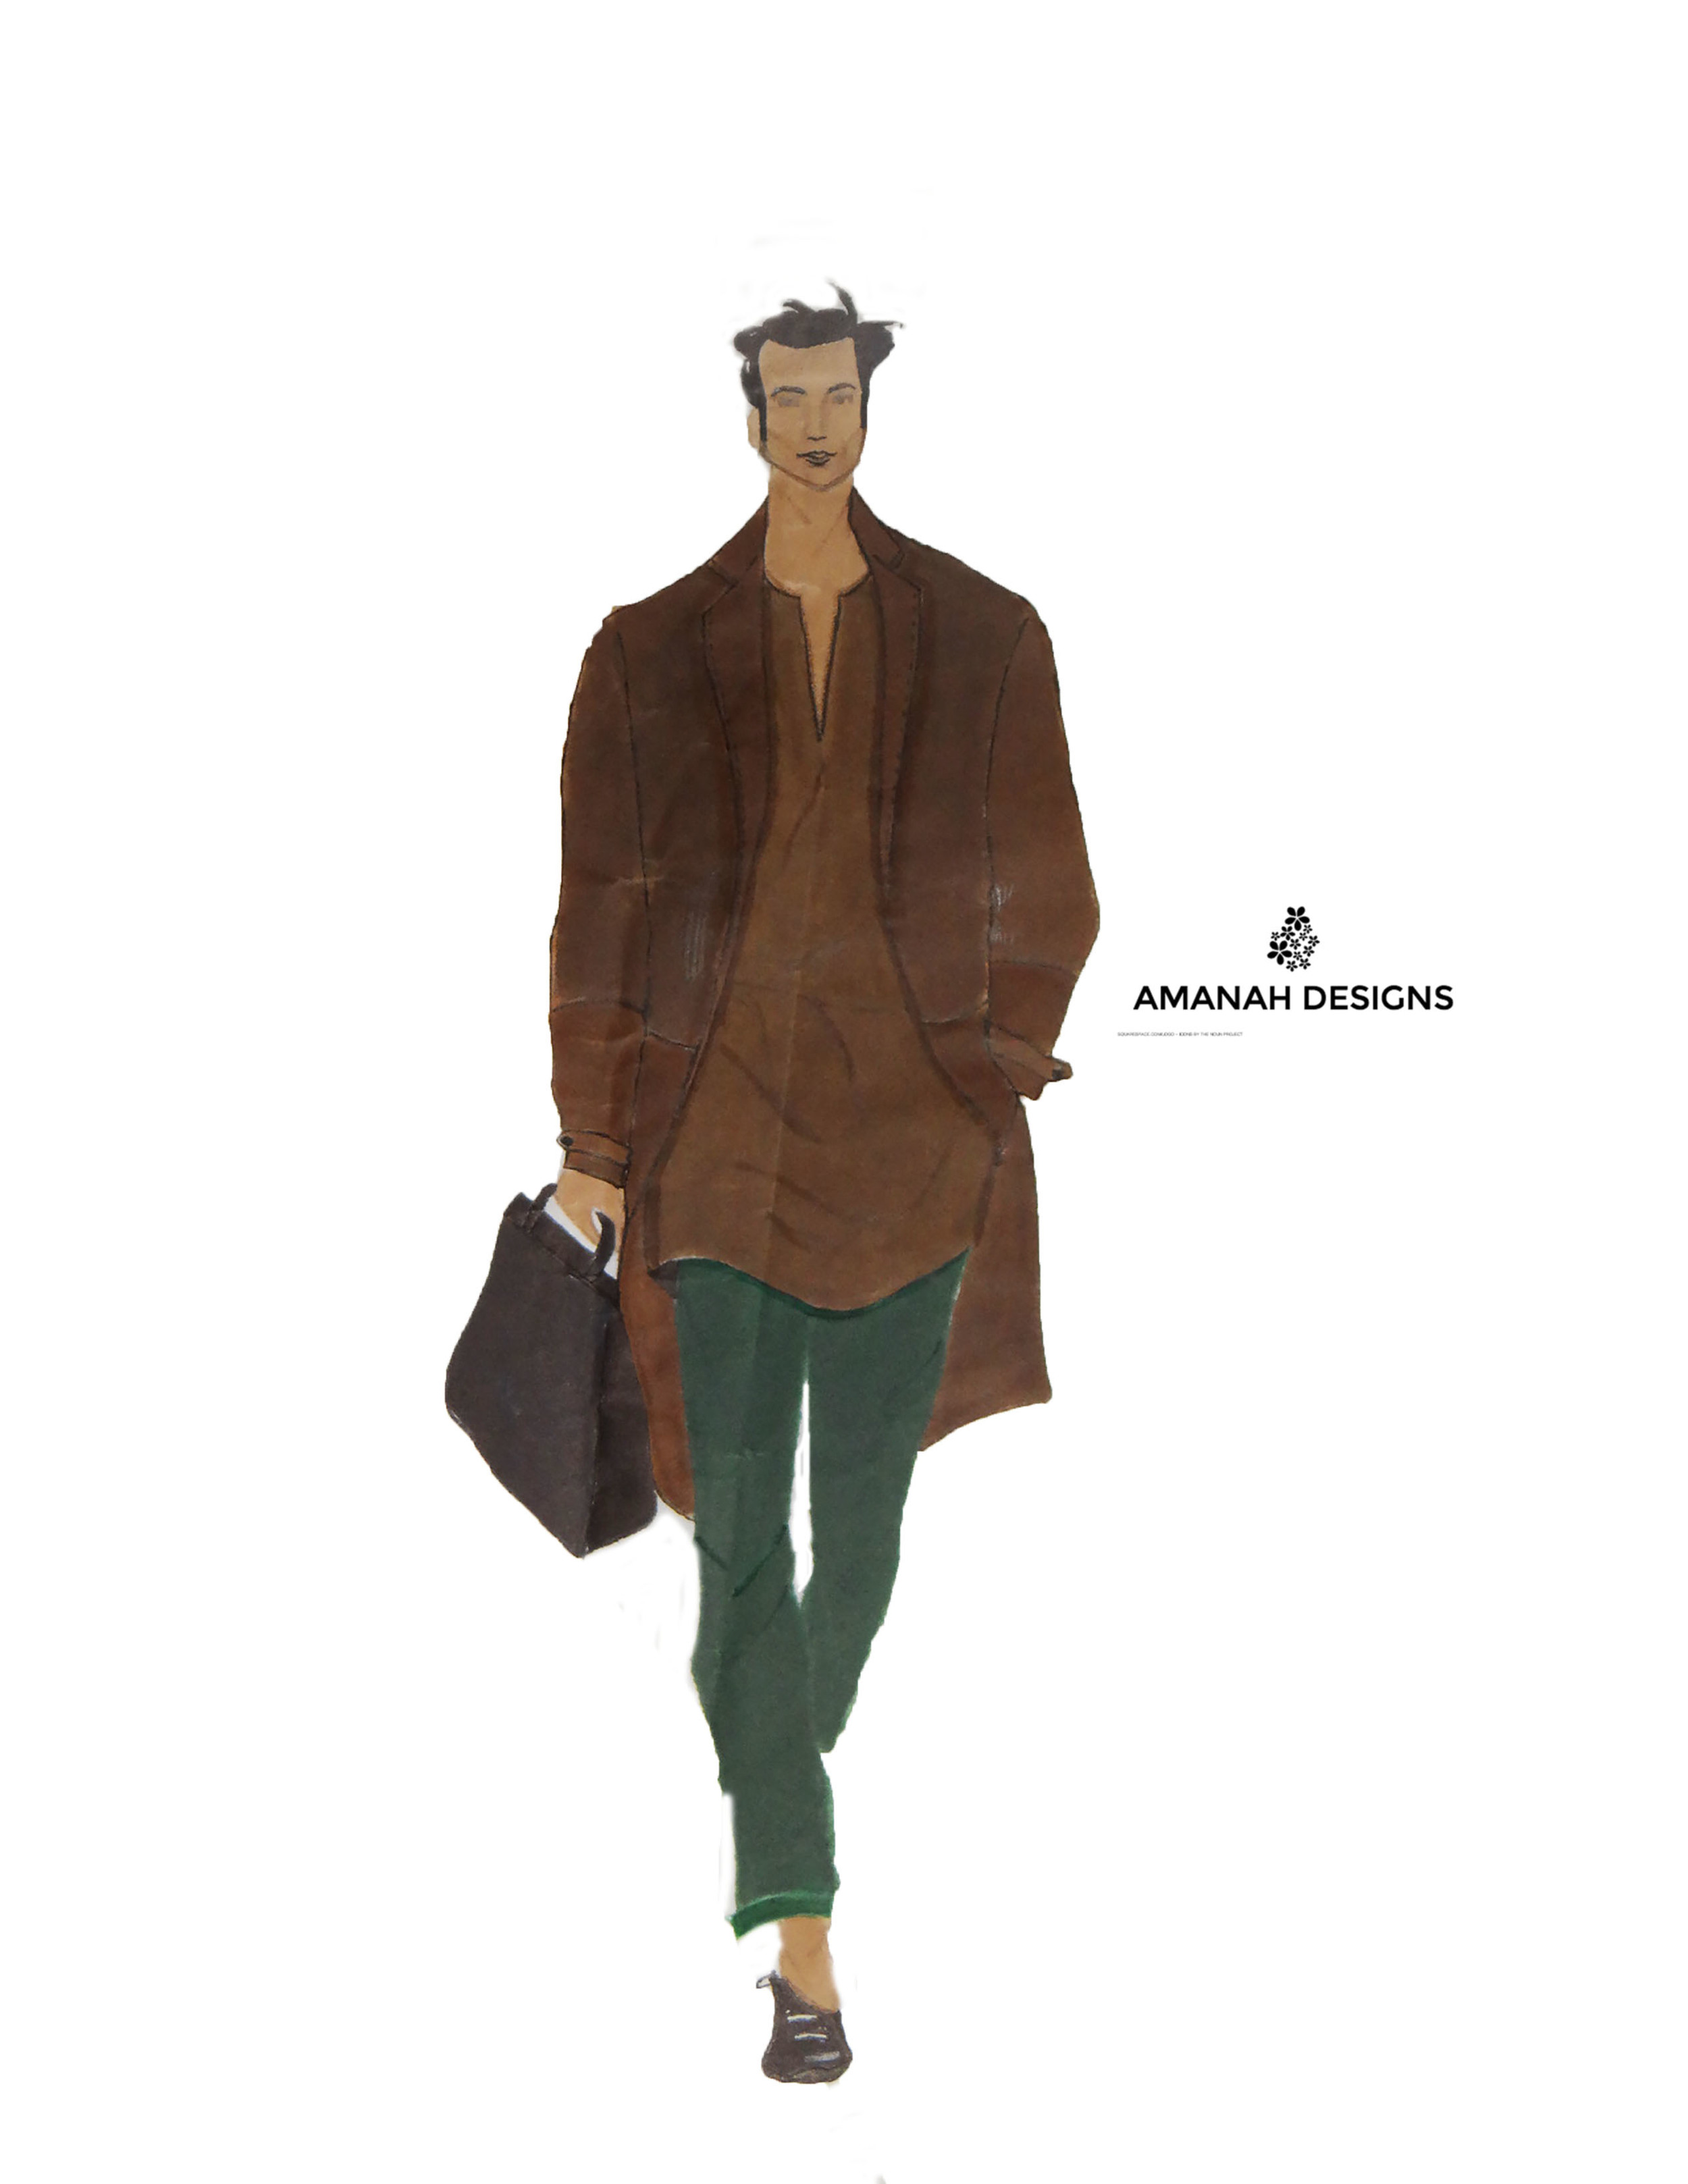 Style Description: (Casual/ Official wear for men) Brown corduroy blazer, light chambray shirt, green slim- fit pants and black loafers.